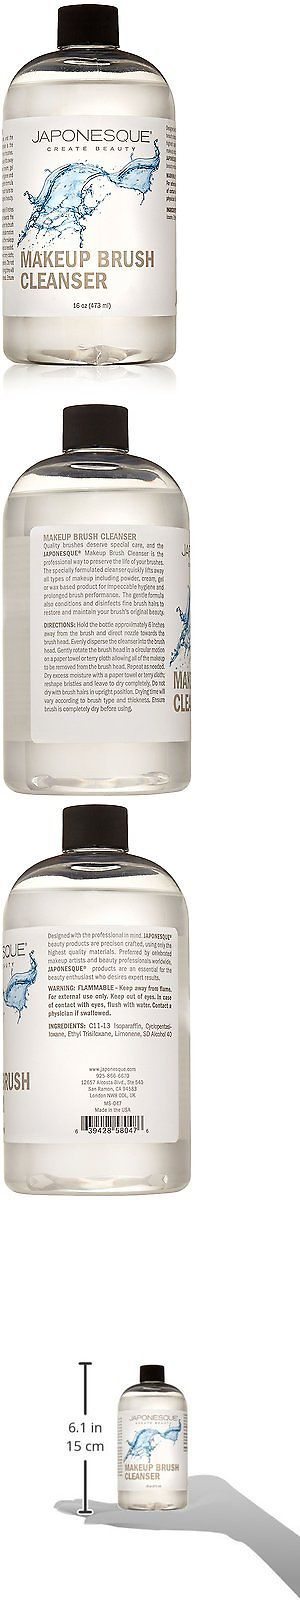 Brush Cleaners: Japonesque Makeup Brush Cleanser, 16 Oz. -> BUY IT NOW ONLY: $34.48 on eBay!